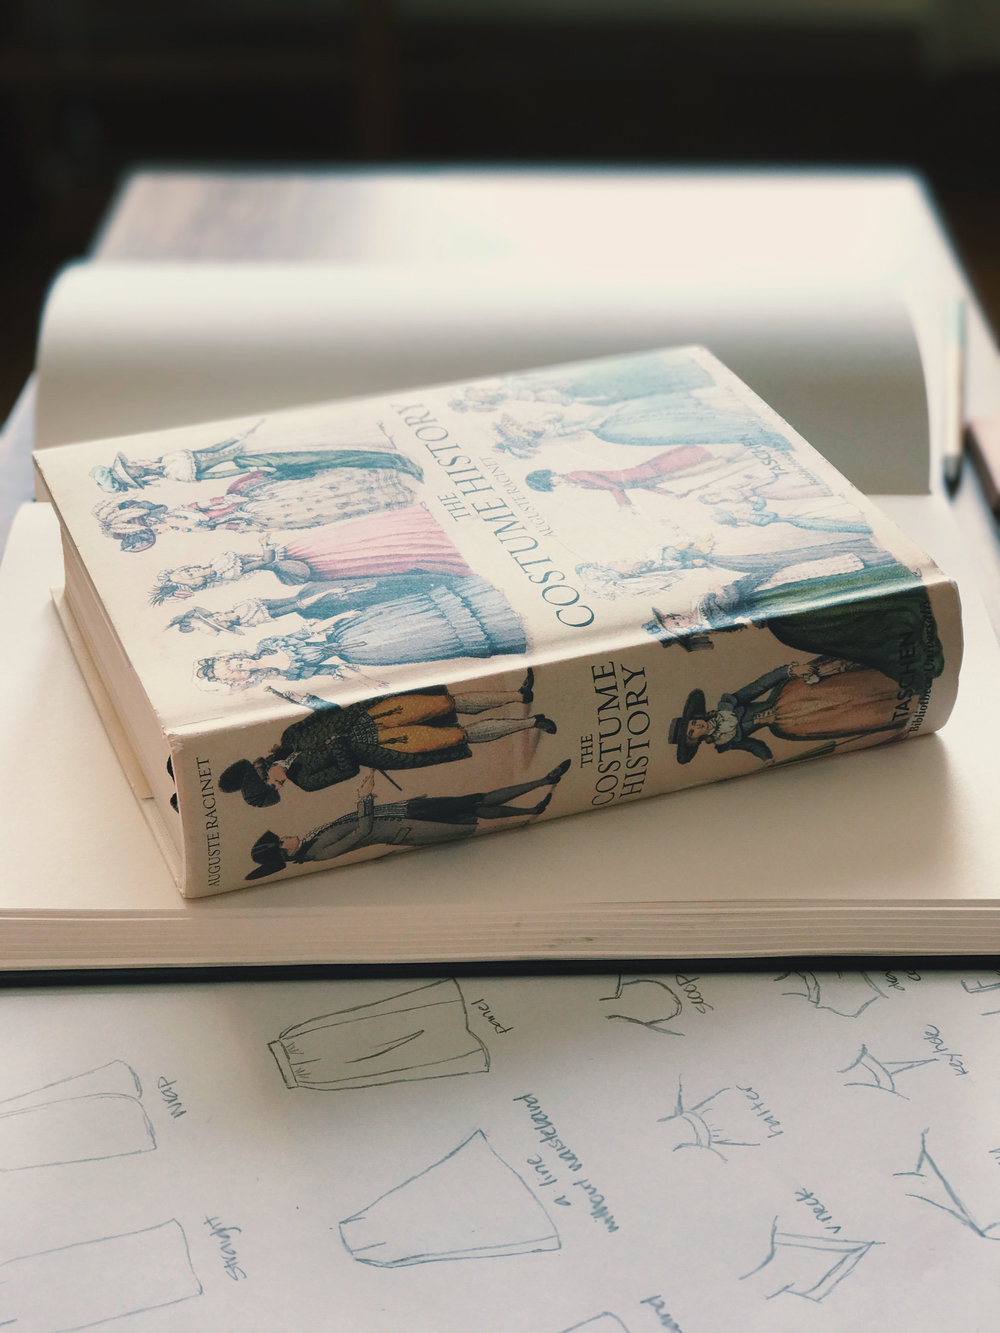 book and sketches.jpg